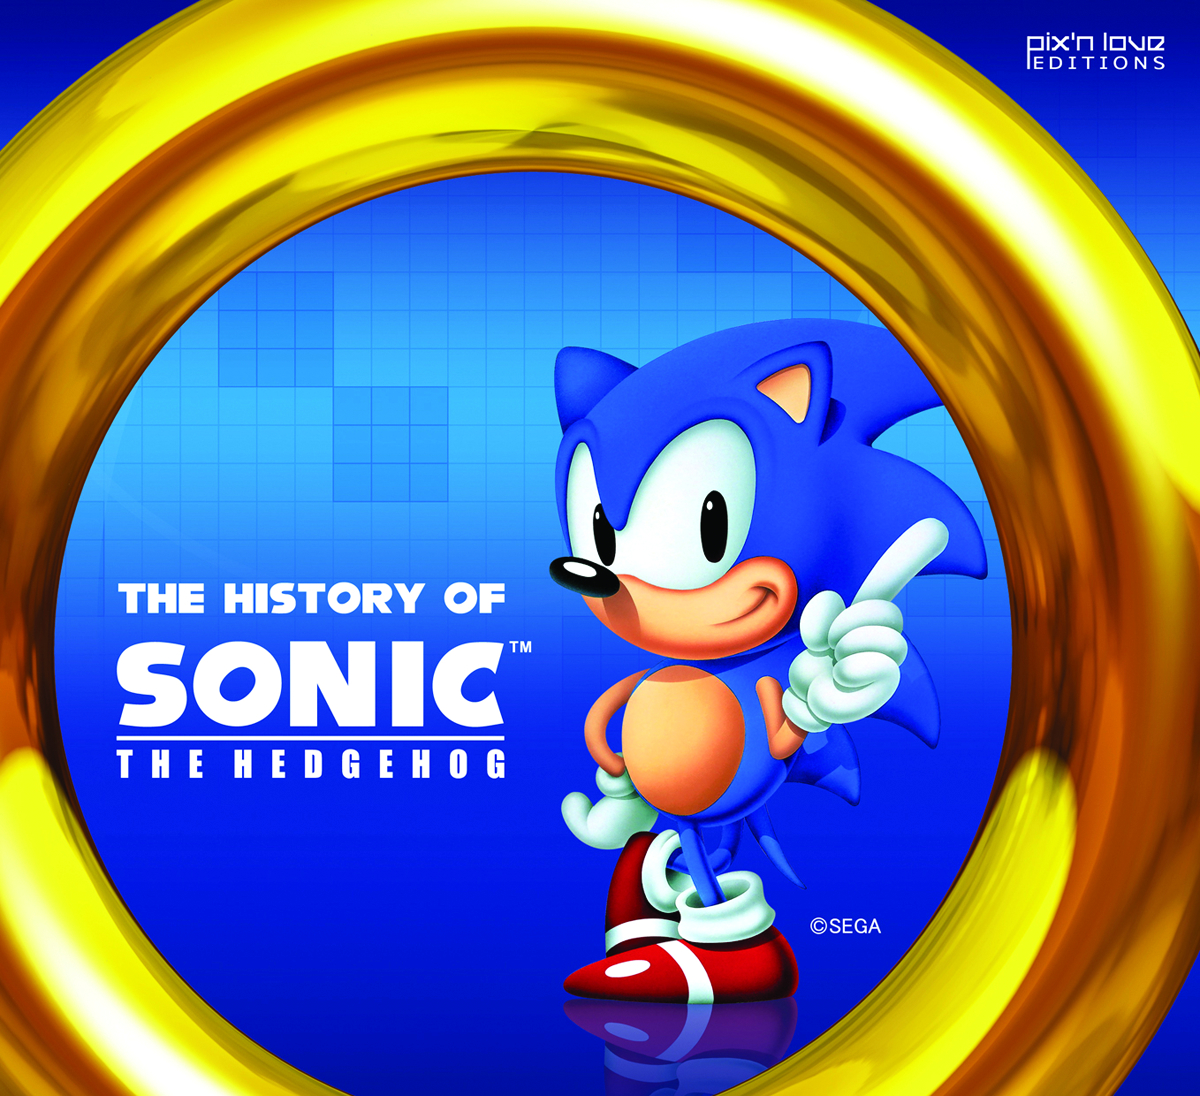 HISTORY OF SONIC THE HEDGEHOG SC